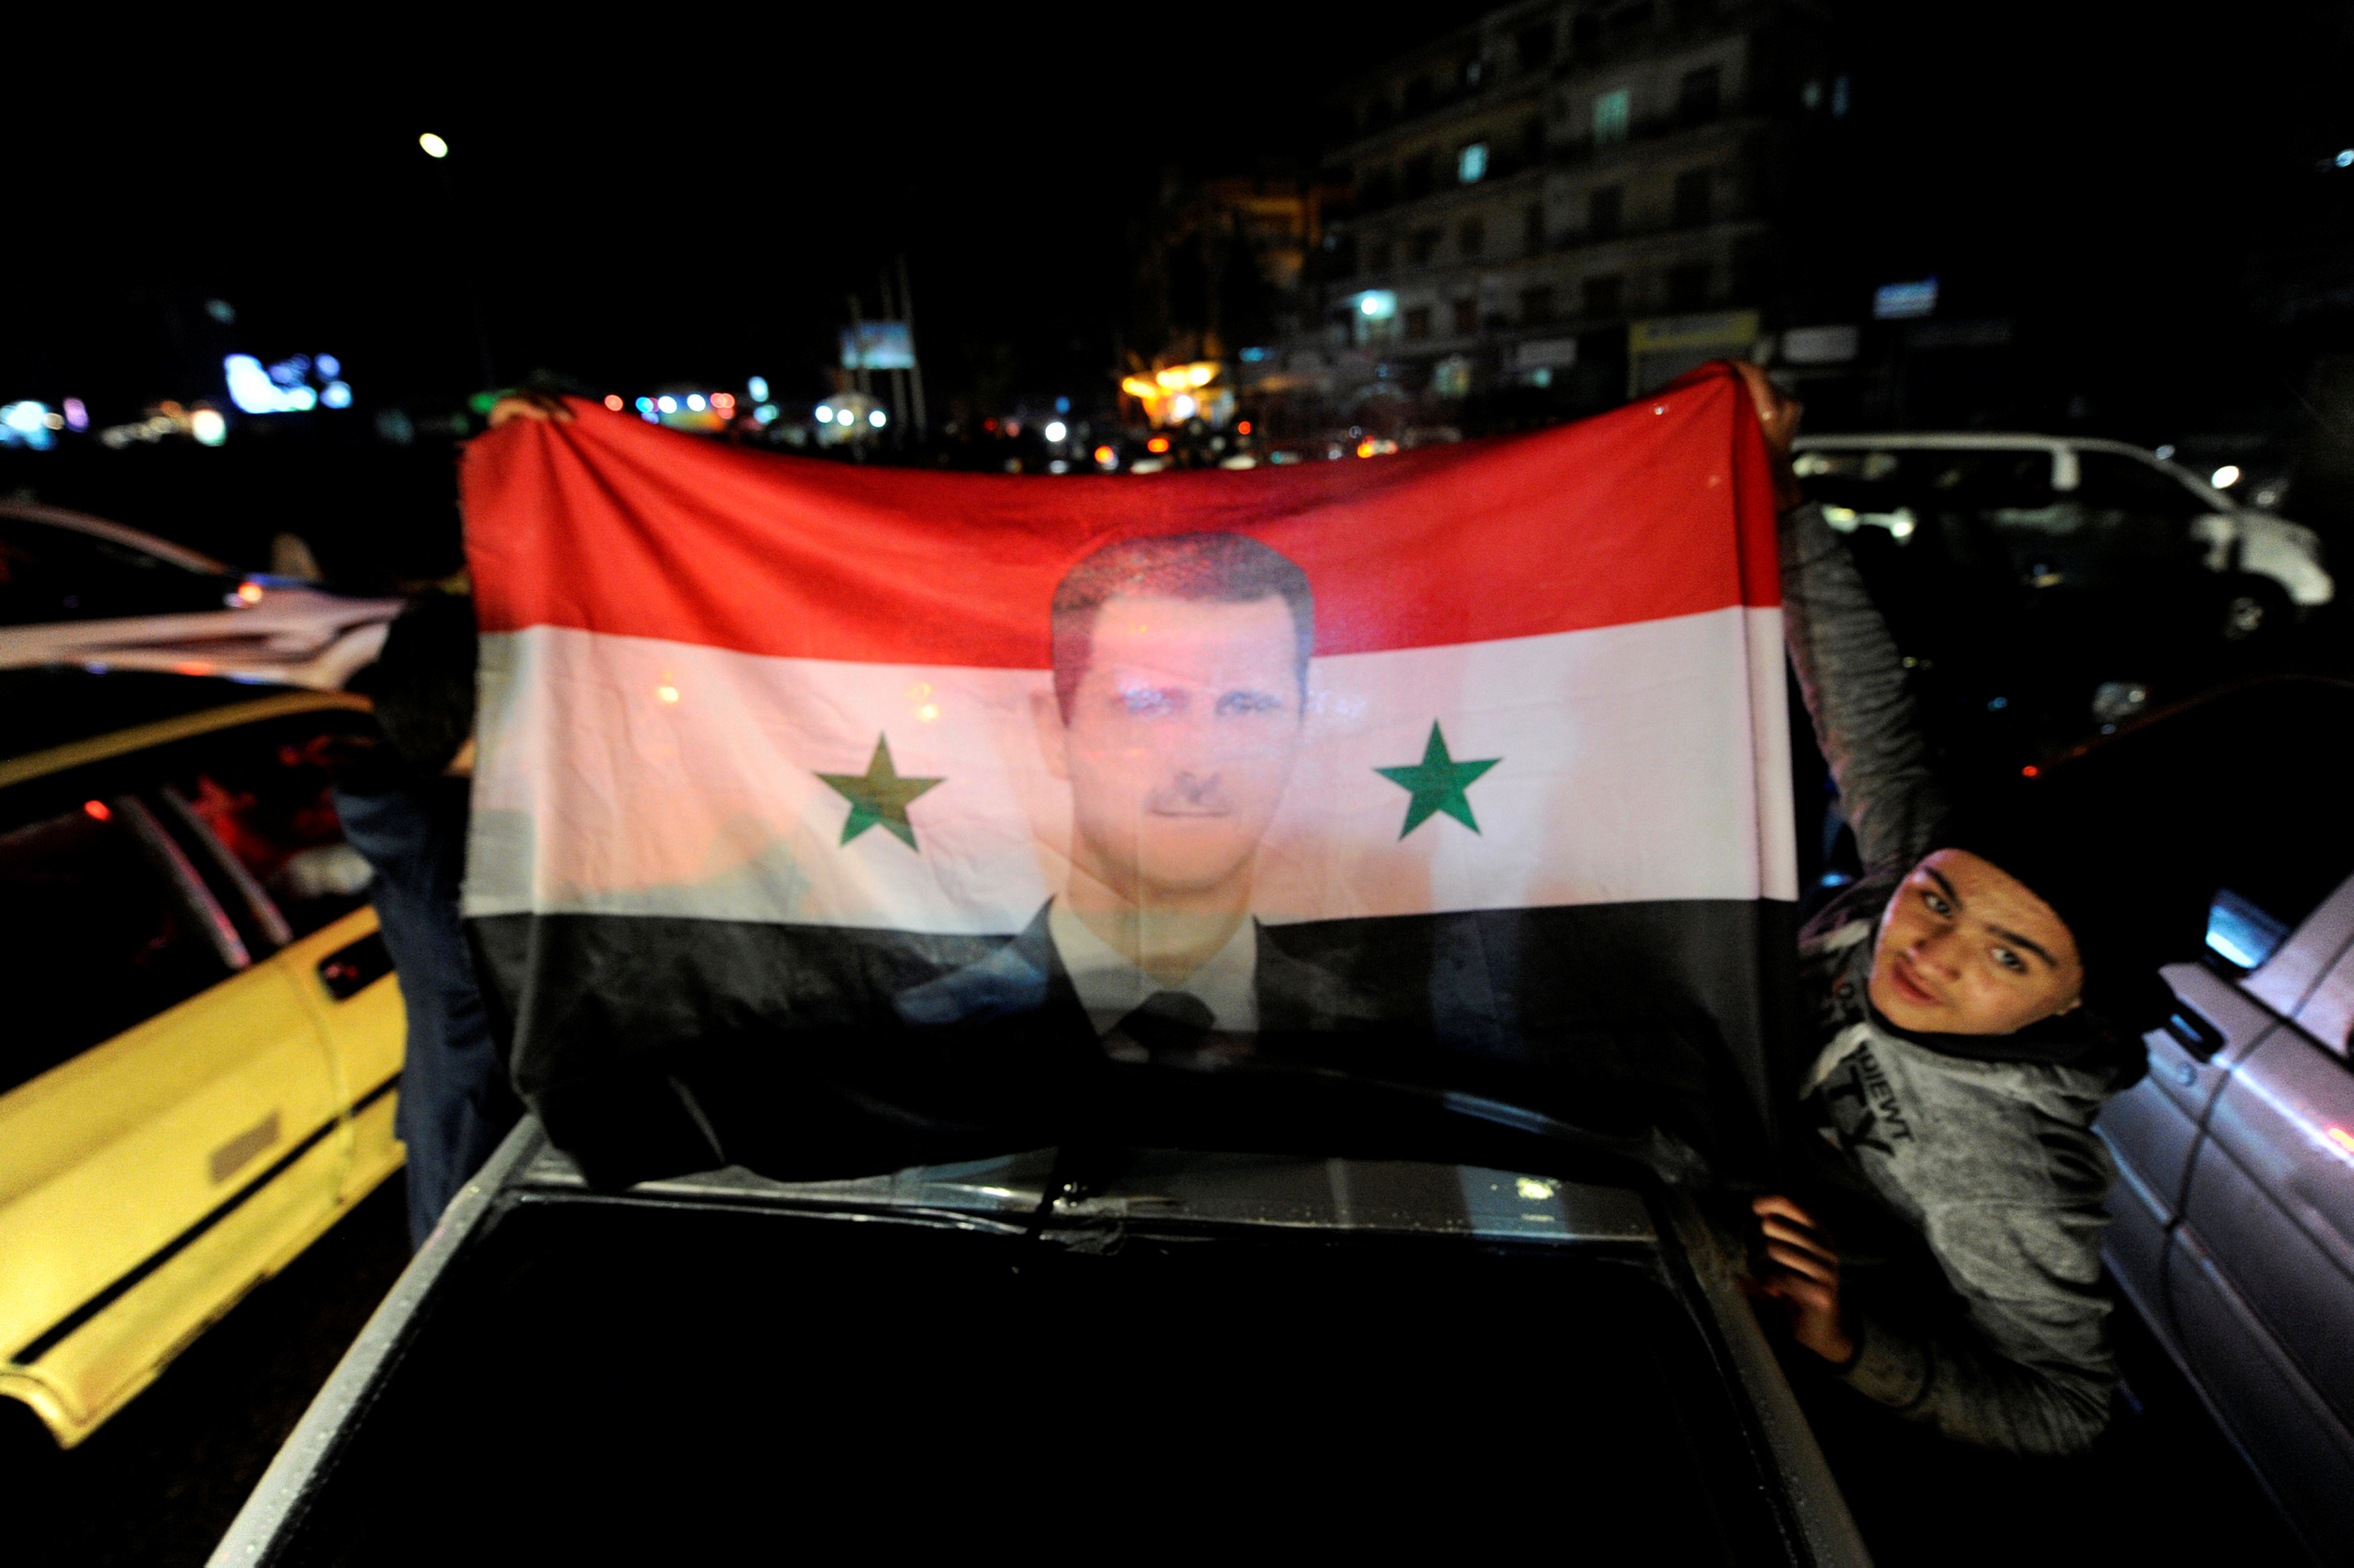 2016 12 12T232023Z 770624606 RC14D5A06D00 RTRMADP 3 MIDEAST CRISIS SYRIA ALEPPO